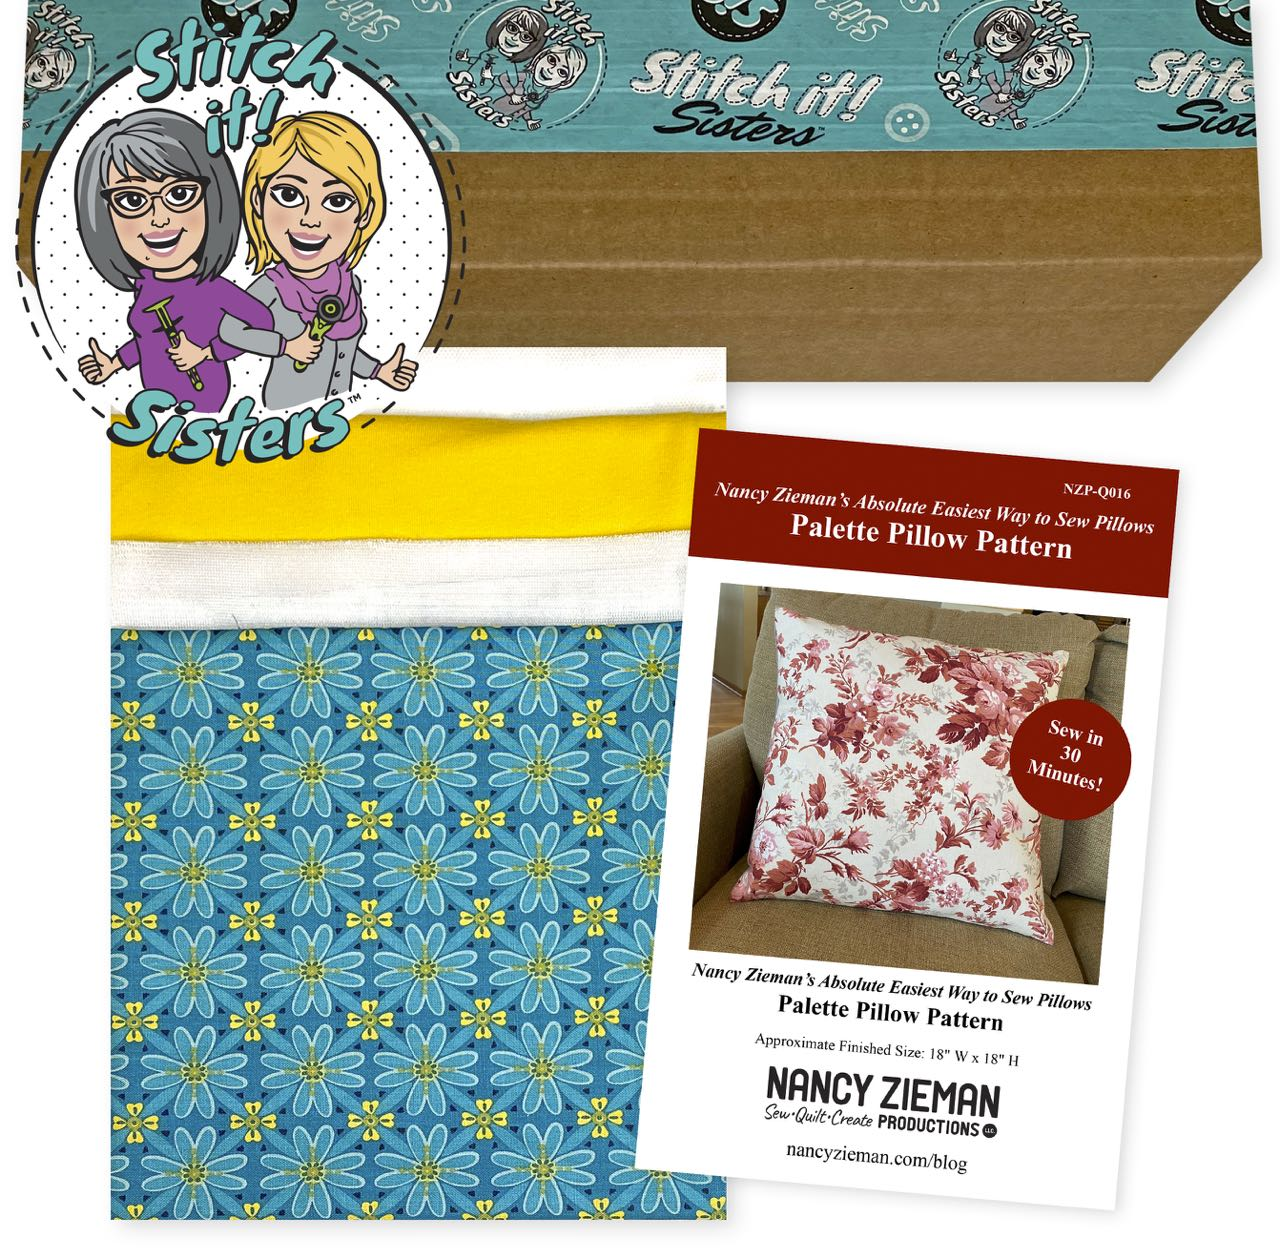 SISQ016TWBPP_01 Teal Wildflower Boutique Palette Pillow Bundle Box